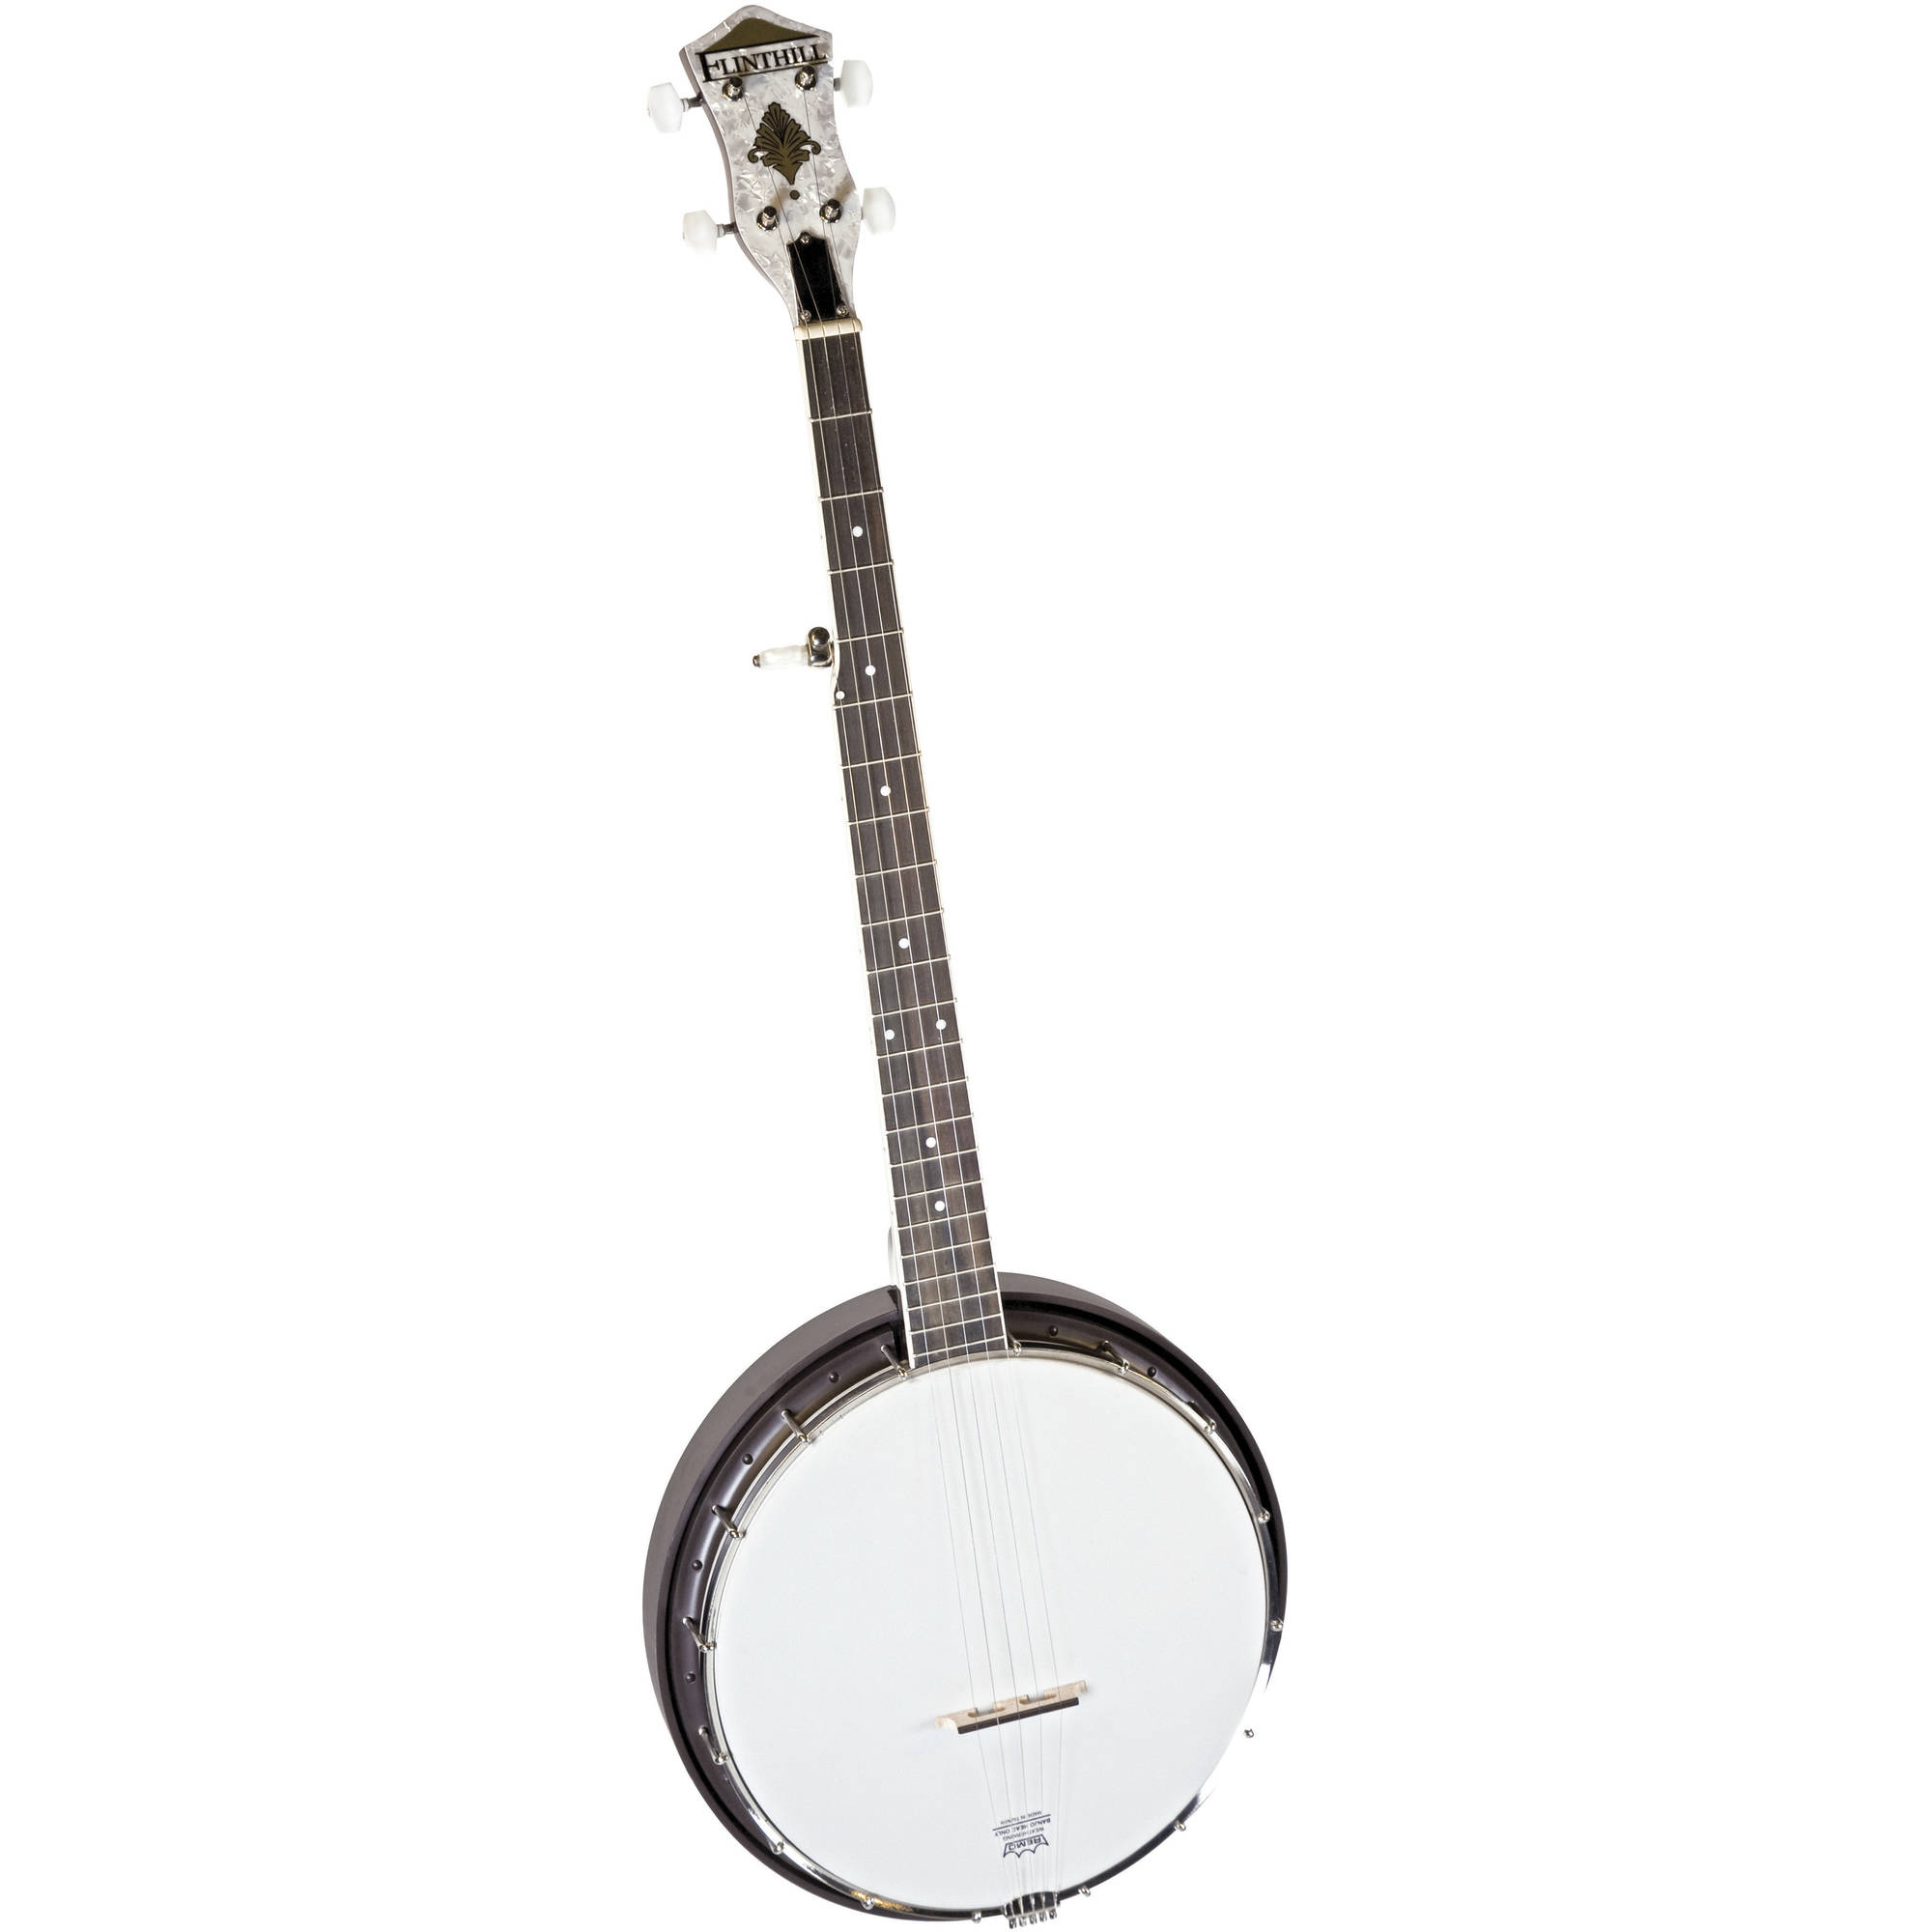 Flinthill FHB-55 Traditional 5-String Resonator Banjo by Flinthill